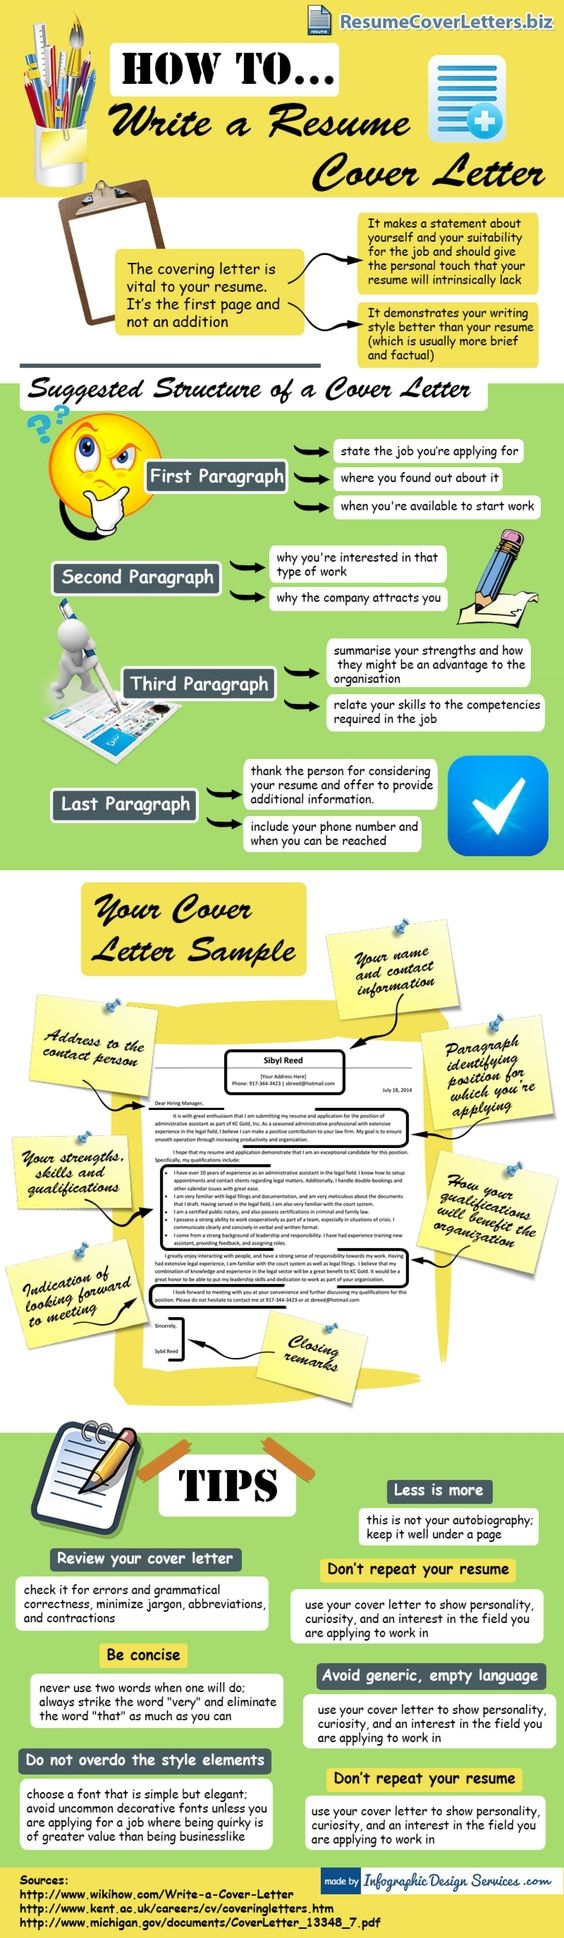 resume cover letter writing tips infographic useful classroom images pinterest resume cover letters infographic and job interviews - Tips On Writing Resume